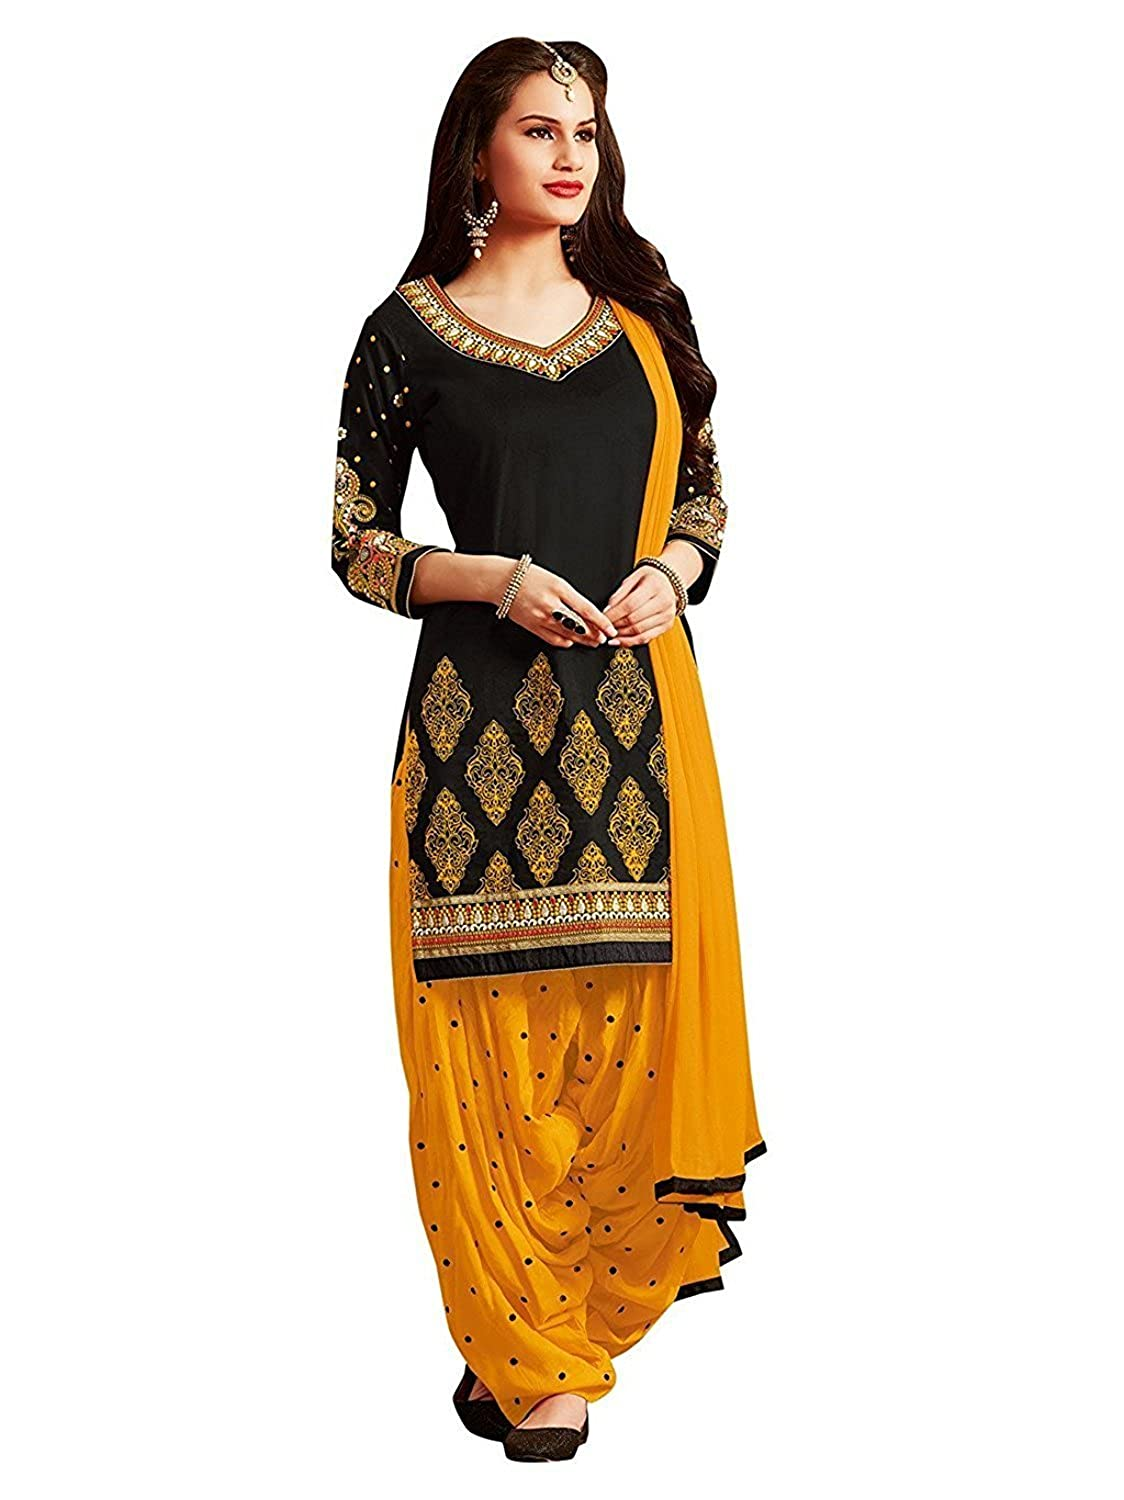 eaae6e33cc4 shiroya brothers Women s Printed Cotton Unstitched Regualar Wear Salwar  Suit Dress Material (SB Dress 210 Free Size)  Amazon.in  Clothing    Accessories